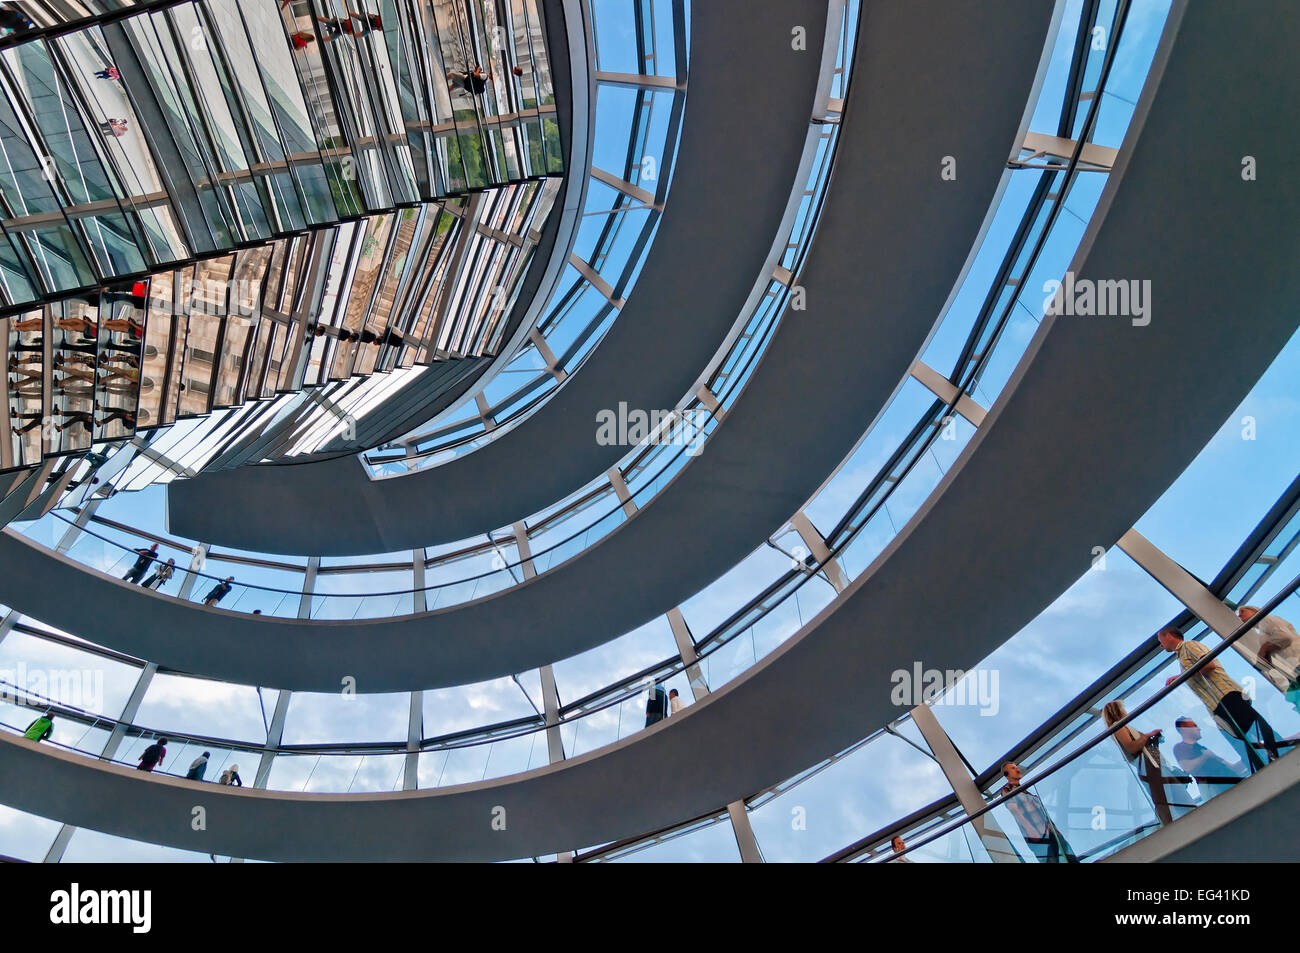 BERLIN, GERMANY - JUNE 08, 2013: people visit the Reichstag dome in Berlin, Germany. It is a glass dome constructed - Stock Image